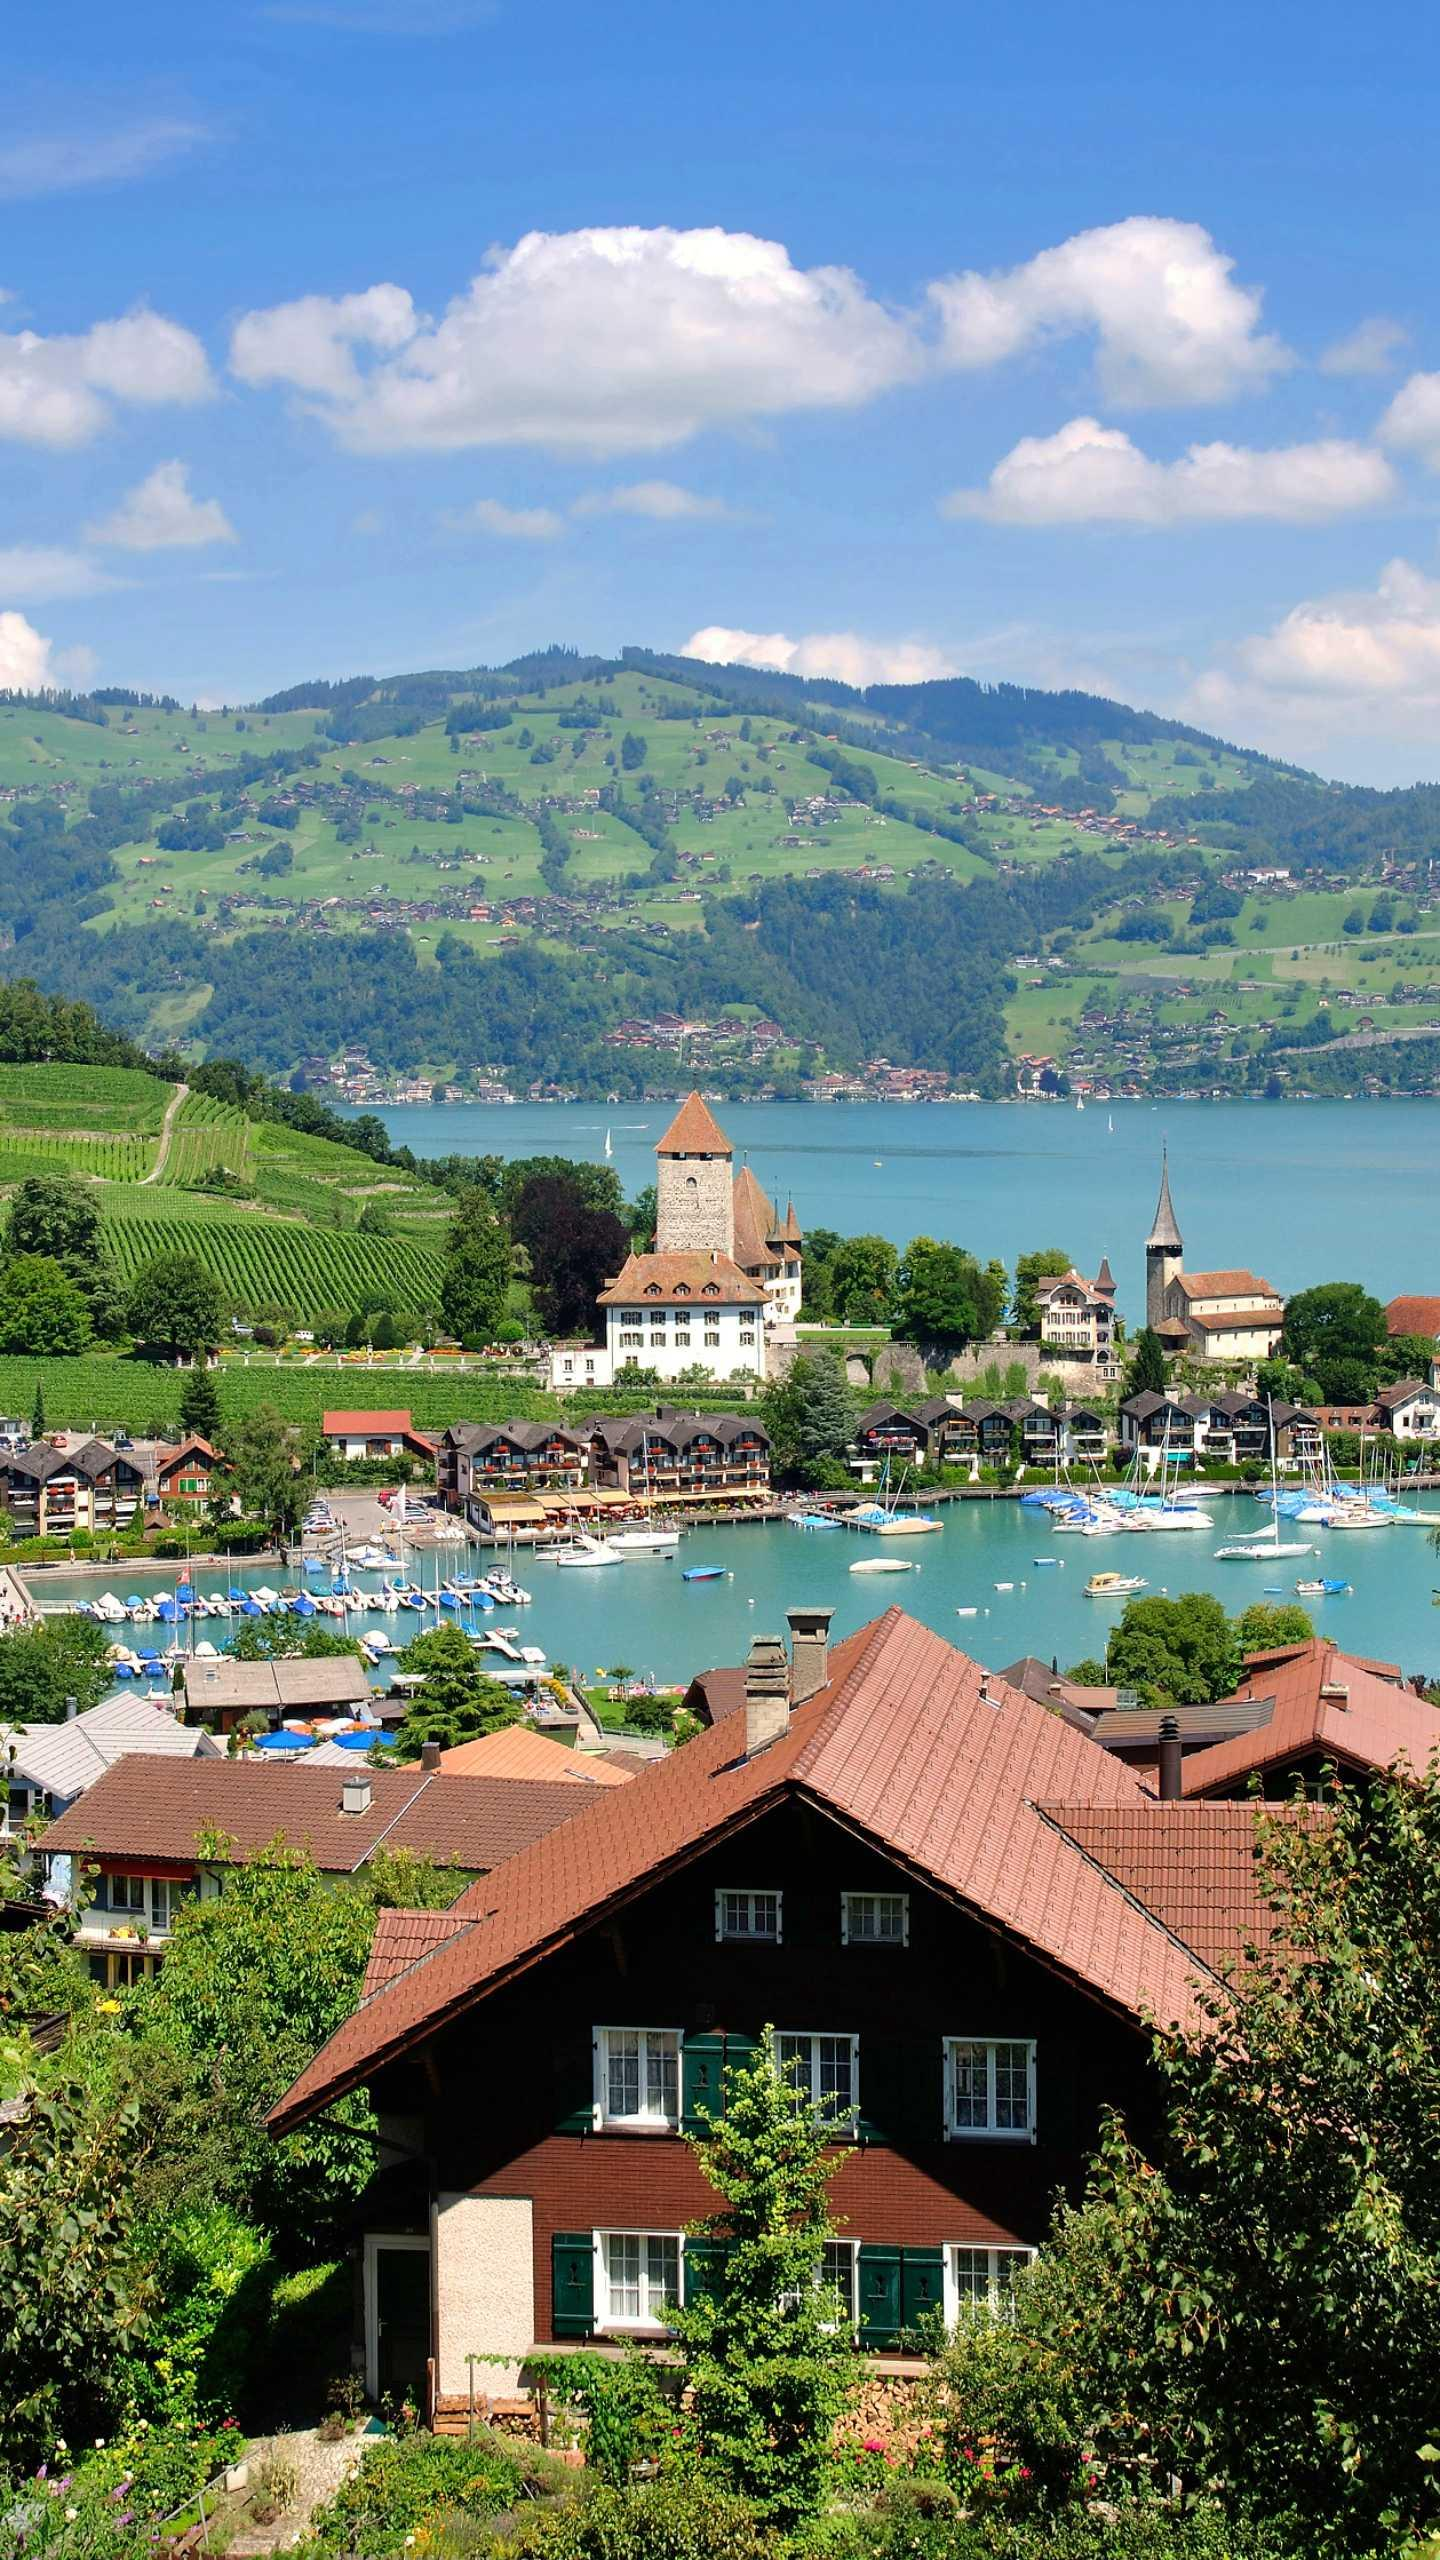 The town of Spiez, Switzerland. The small town of Spiez is like a mirror, surrounded by snow peaks and fresh air. It is a famous resort for recreation and water sports in Switzerland.